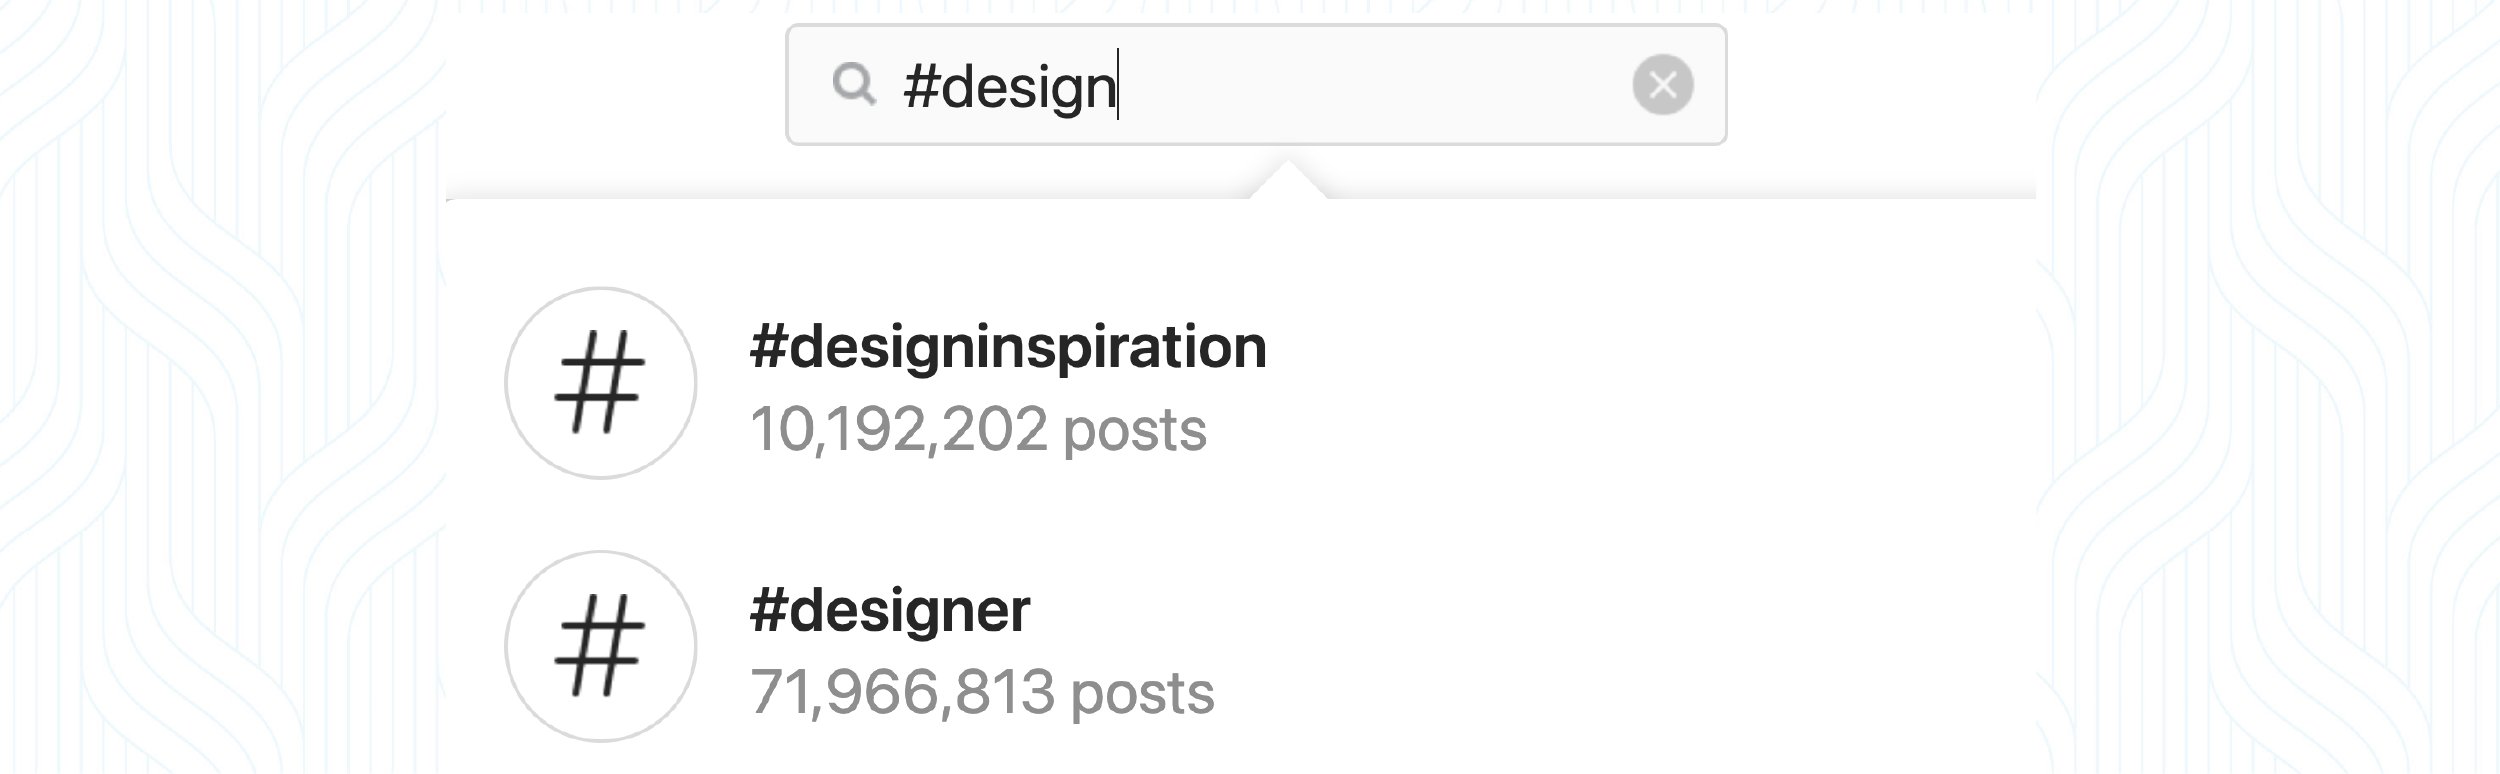 """A screenshot of an Instagram search bar with """"#design"""" typed in"""